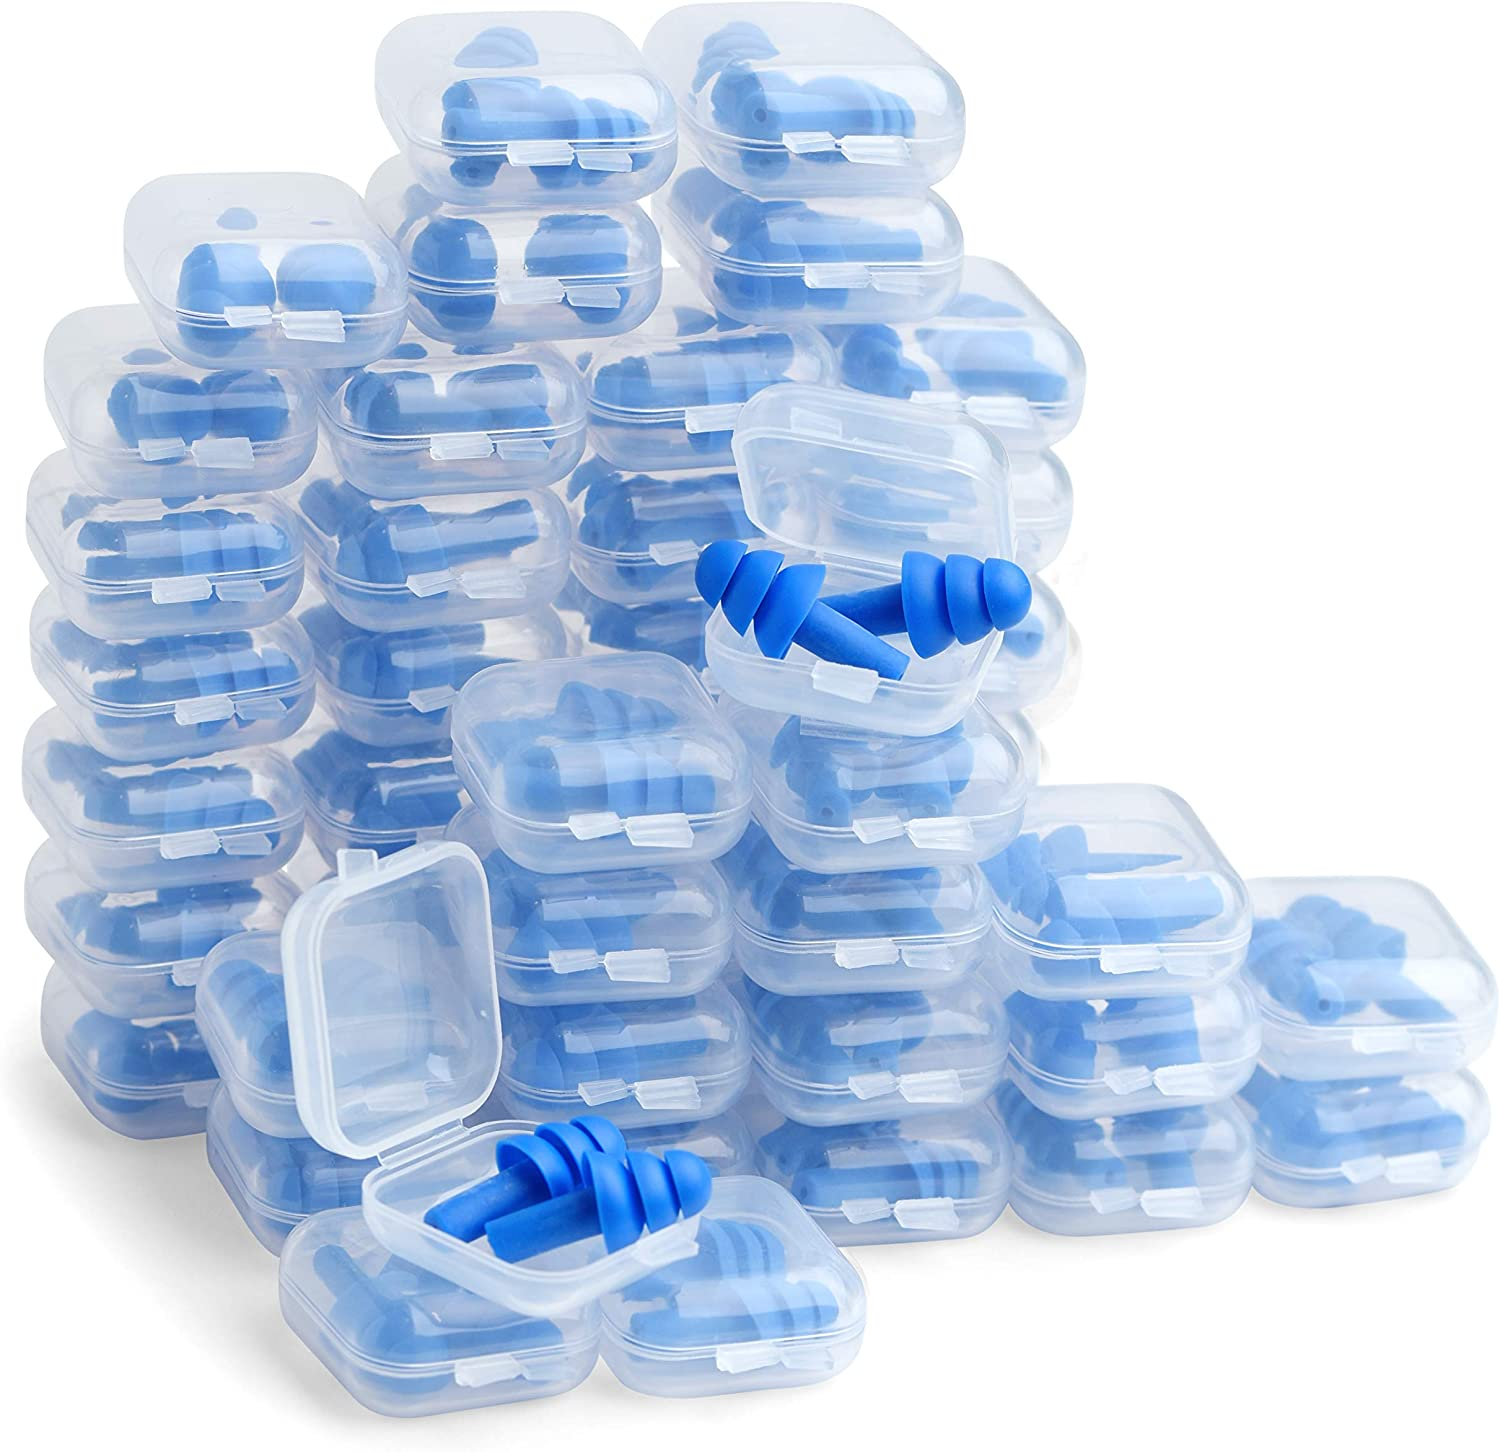 50 Pairs of Silicone Ear Plugs in Plastic Cases NRR 28dB Soft Reusable Washable Comfortable for Swimming Adults Earplugs Water Shower Surfing Sports